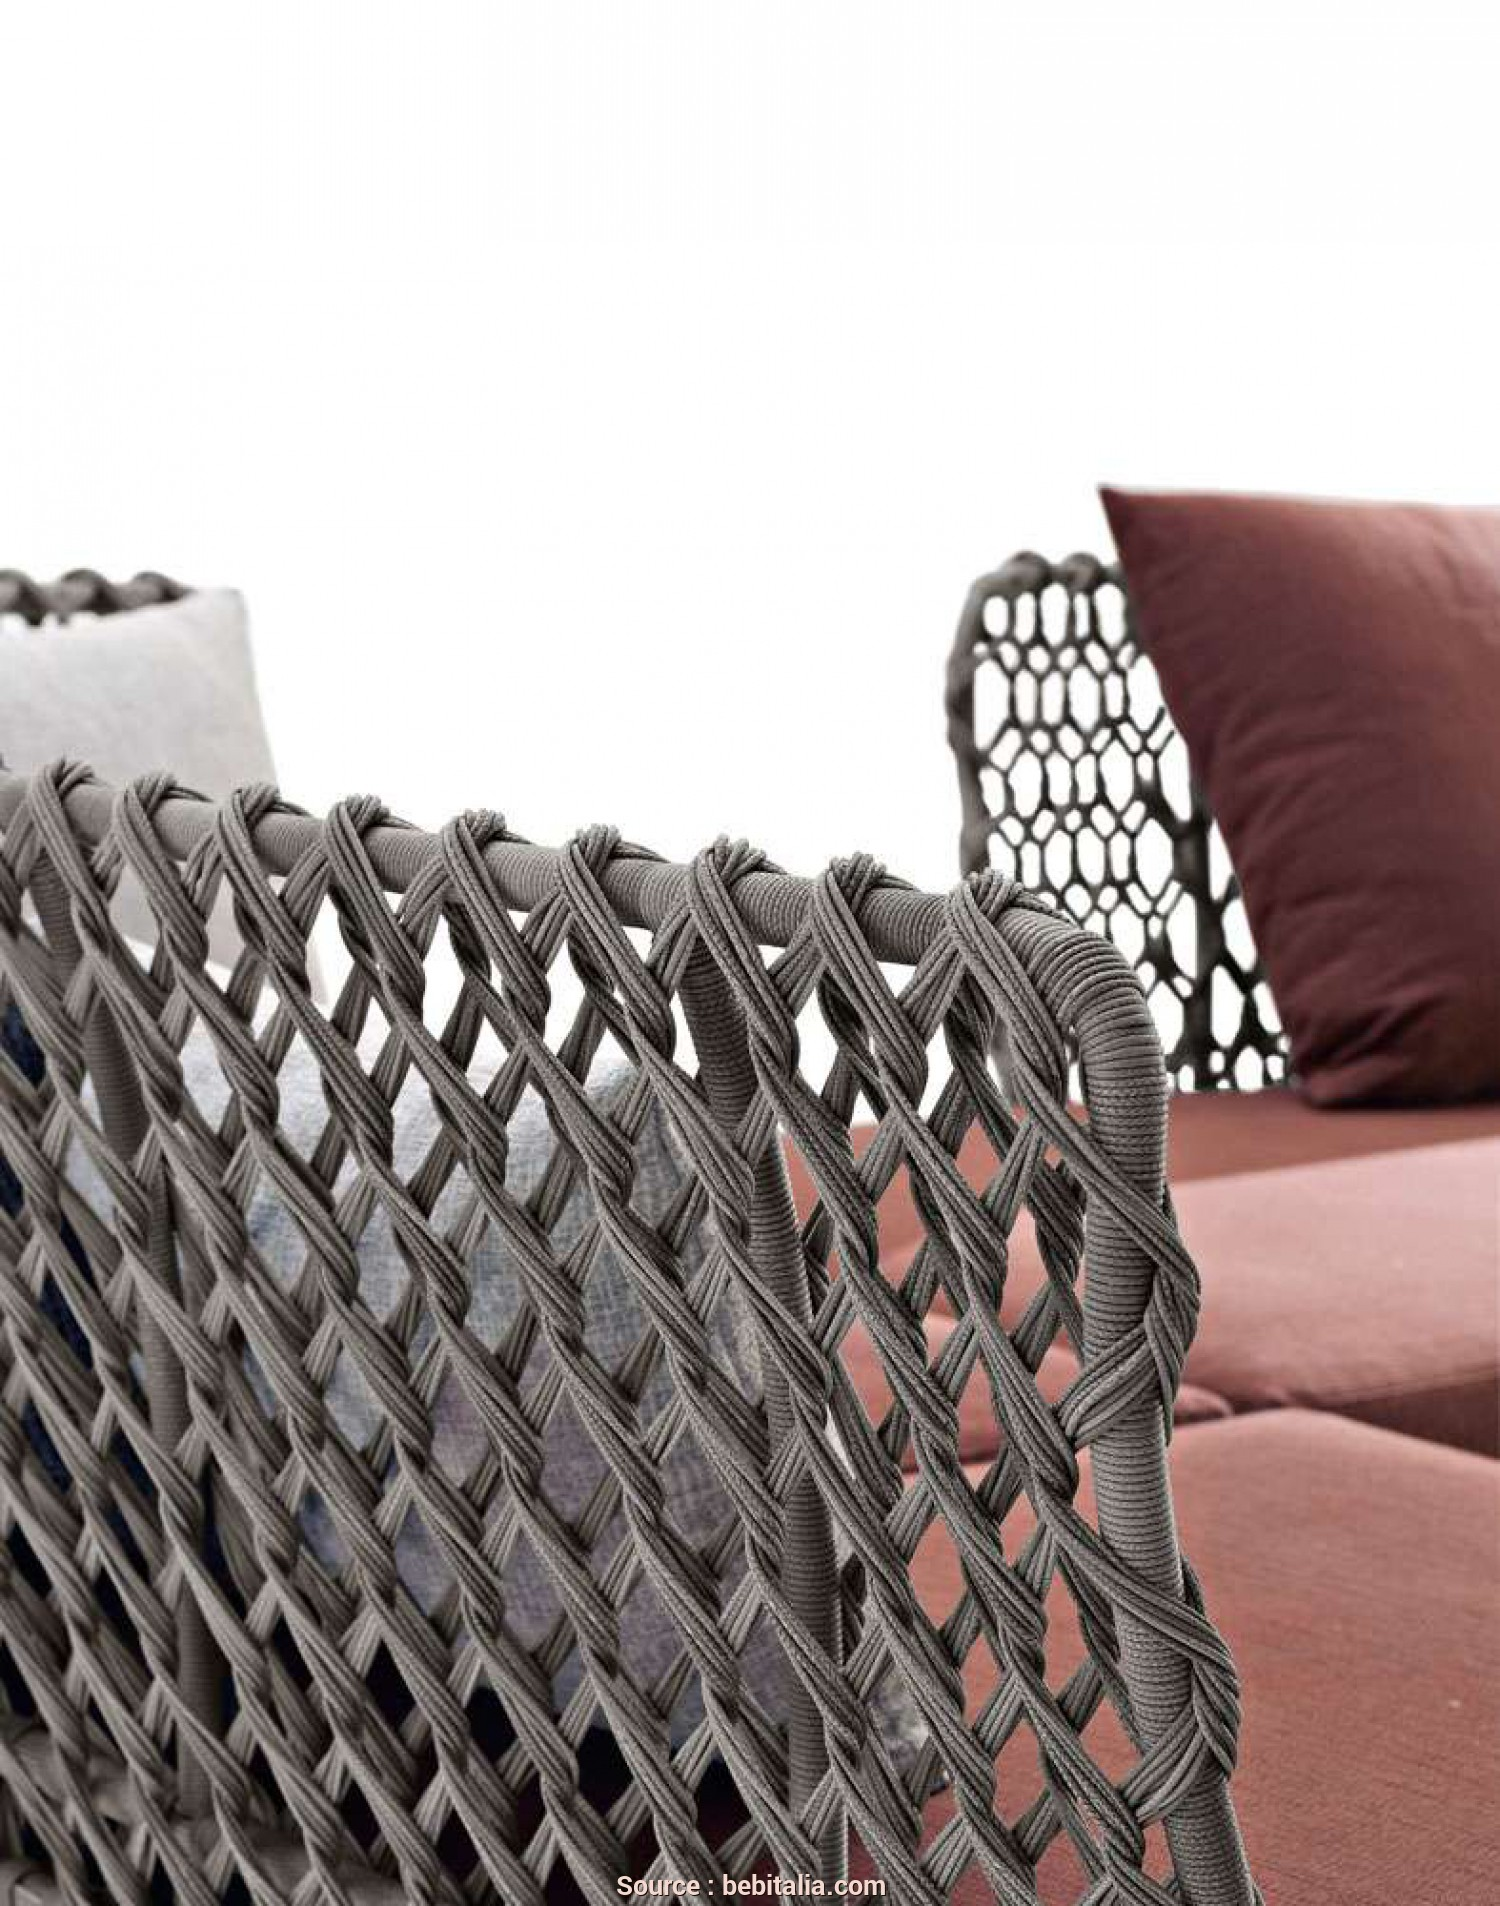 Divano Angolare Curvo Ravel, Incredibile Divano Ravel -B&B Italia Outdoor, Design Di Patricia Urquiola